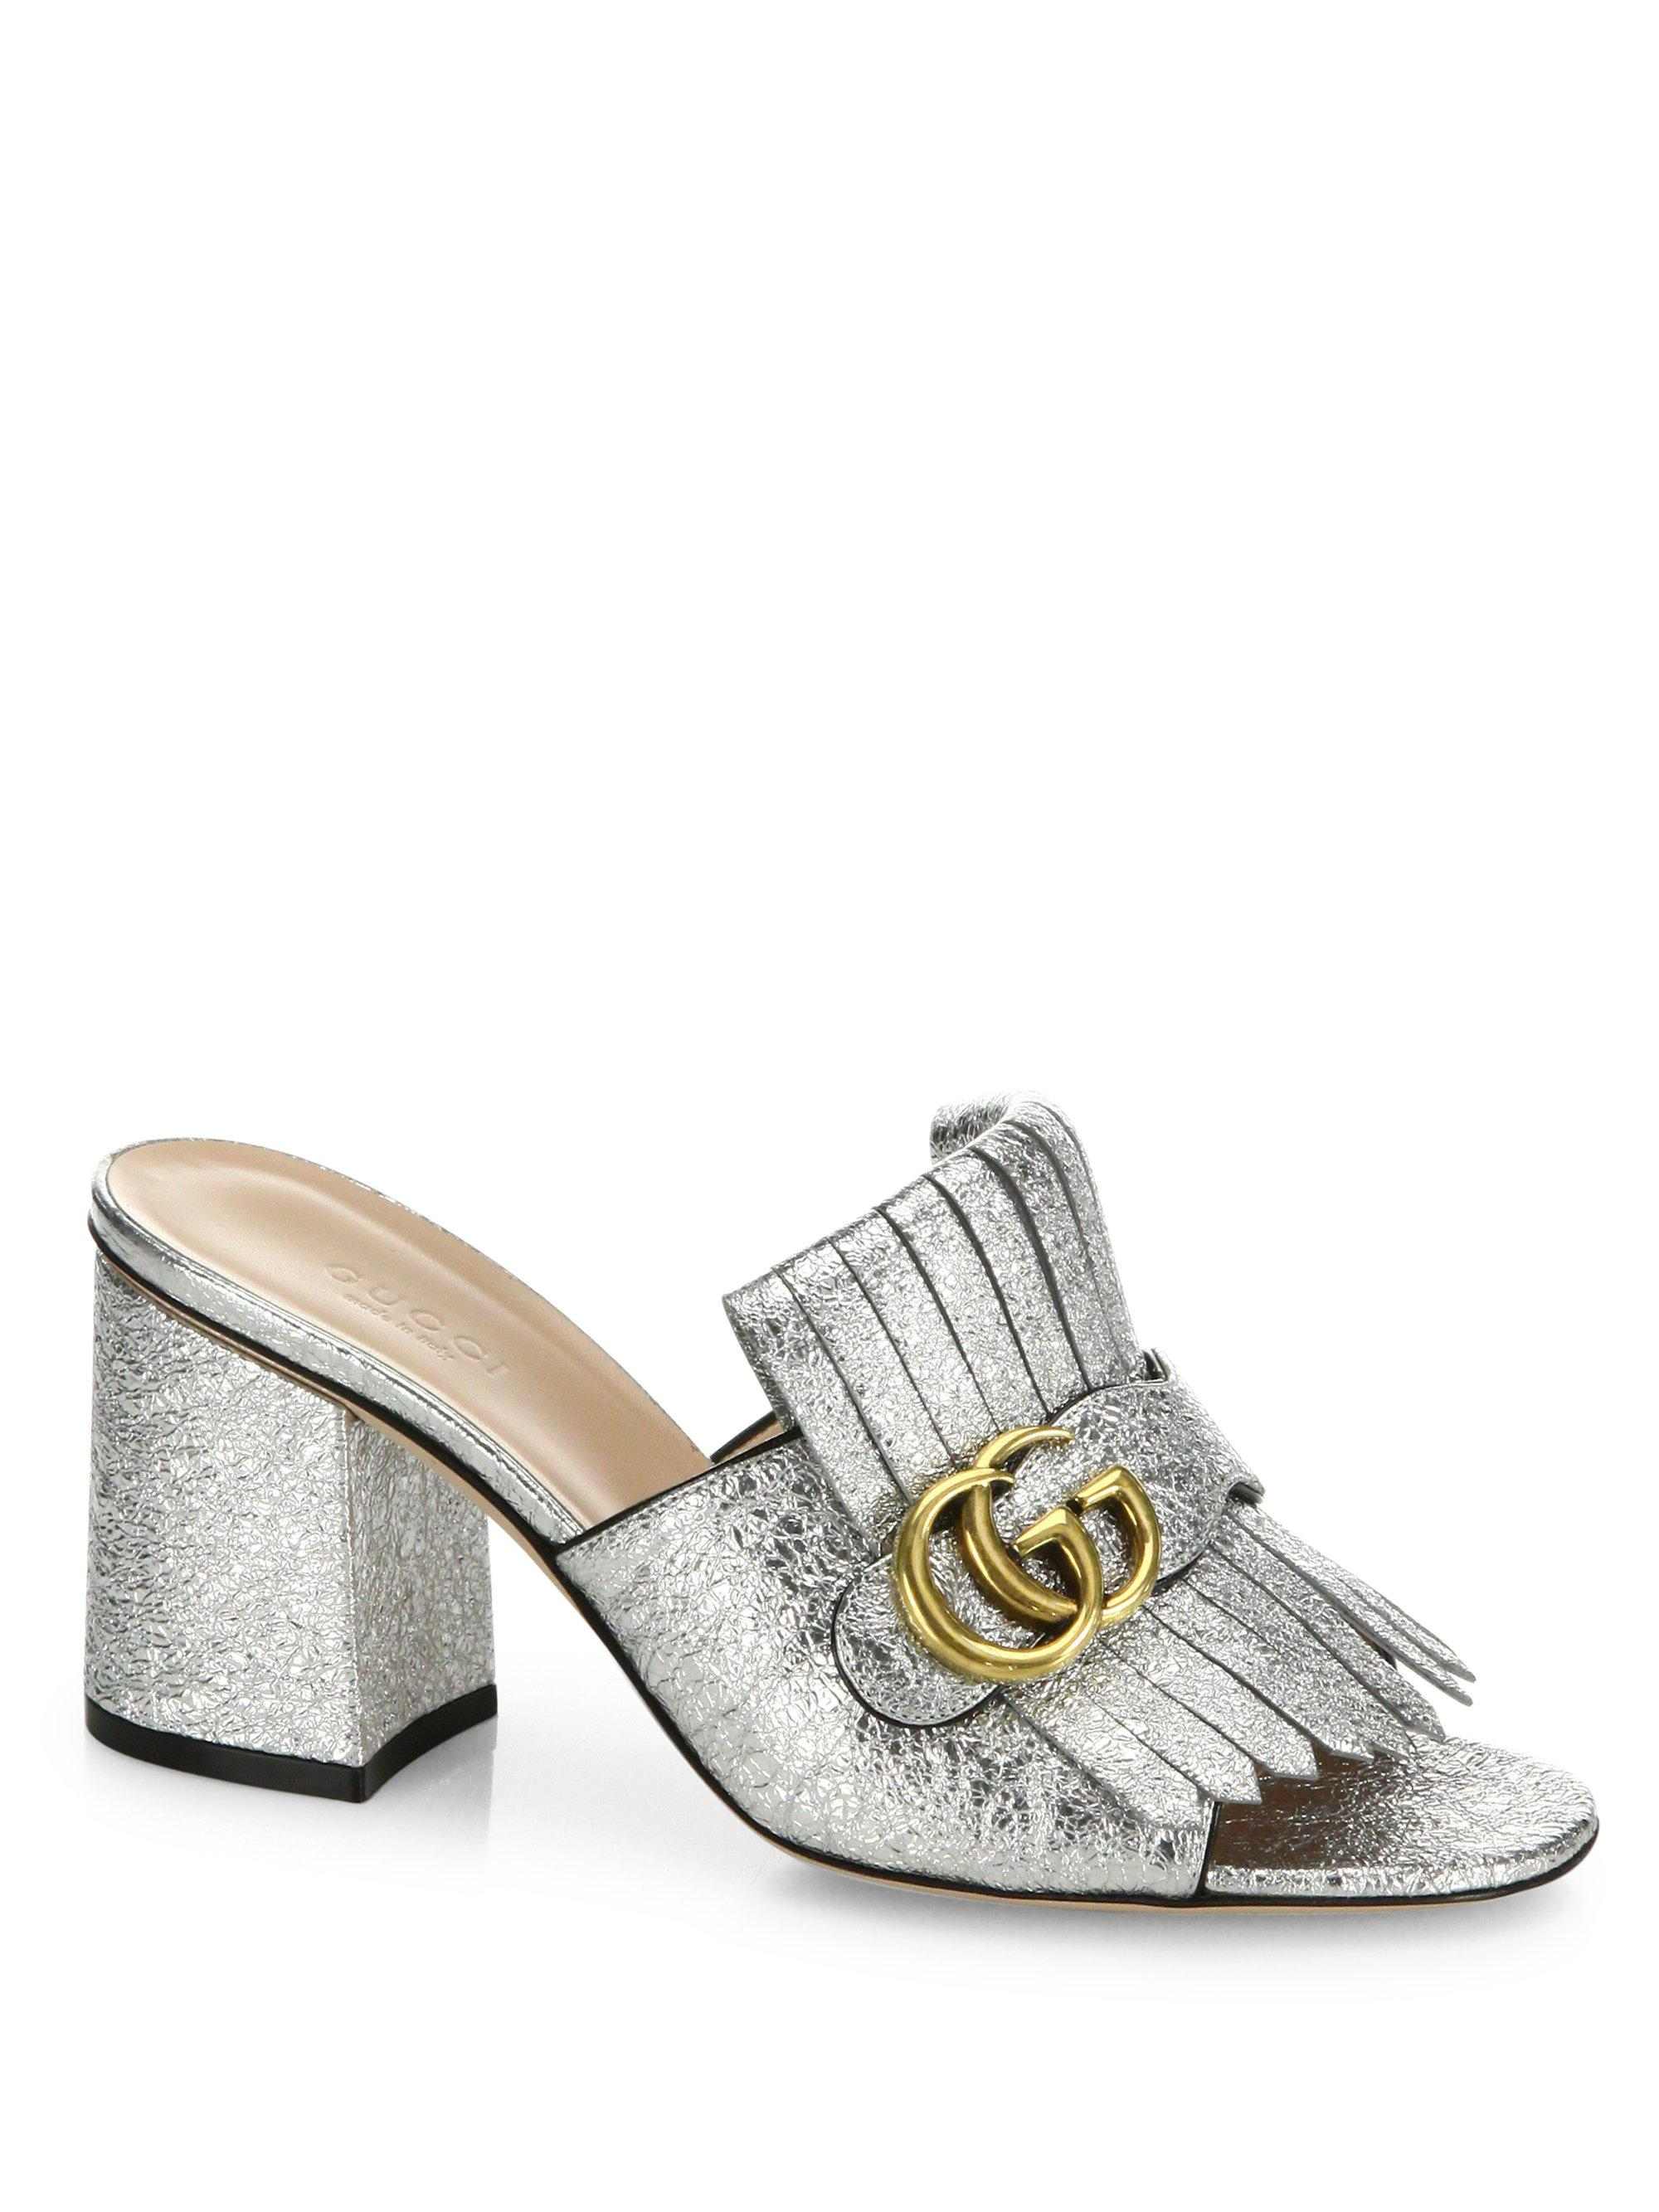 a3b21a393016 Lyst - Gucci Marmont Gg Kiltie Metallic Leather Block Heel Mules in ...